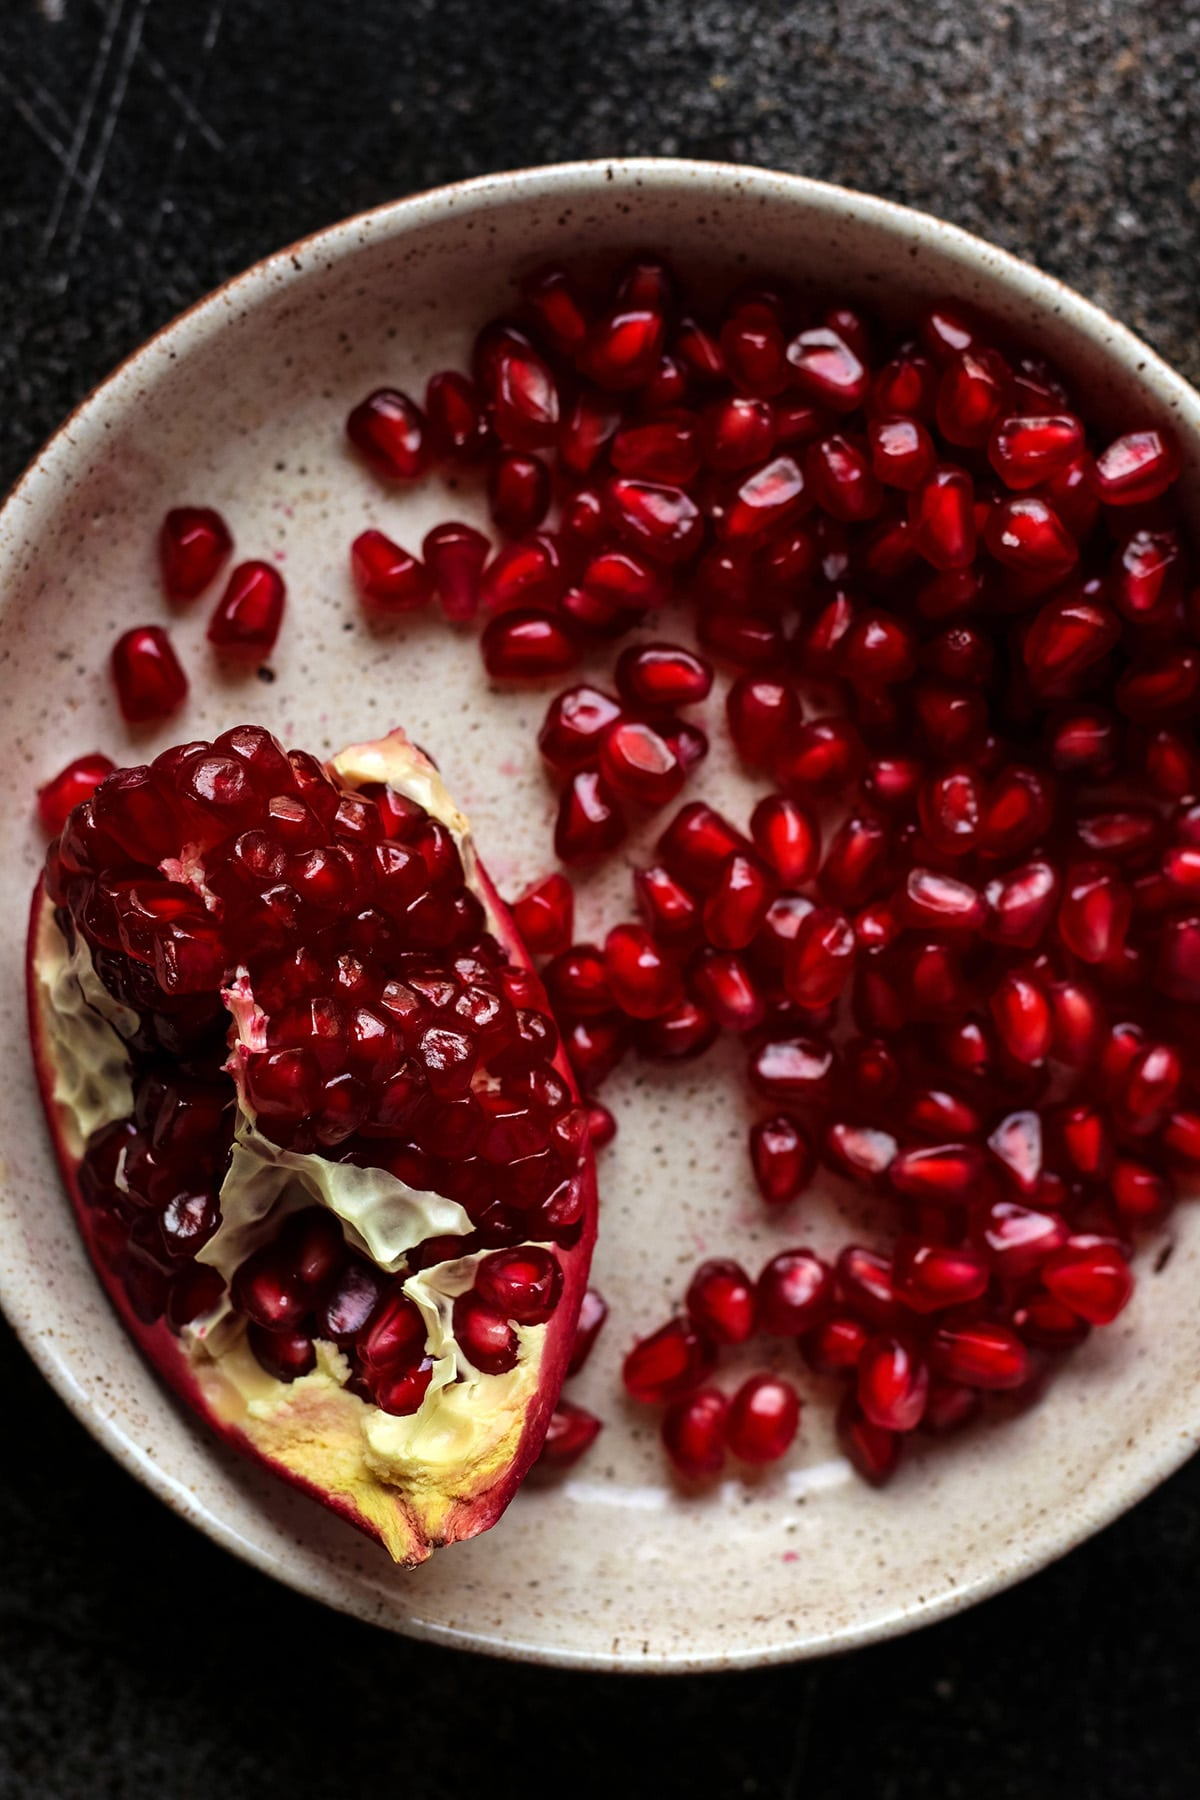 Pomegranate Seeds on a Plate.